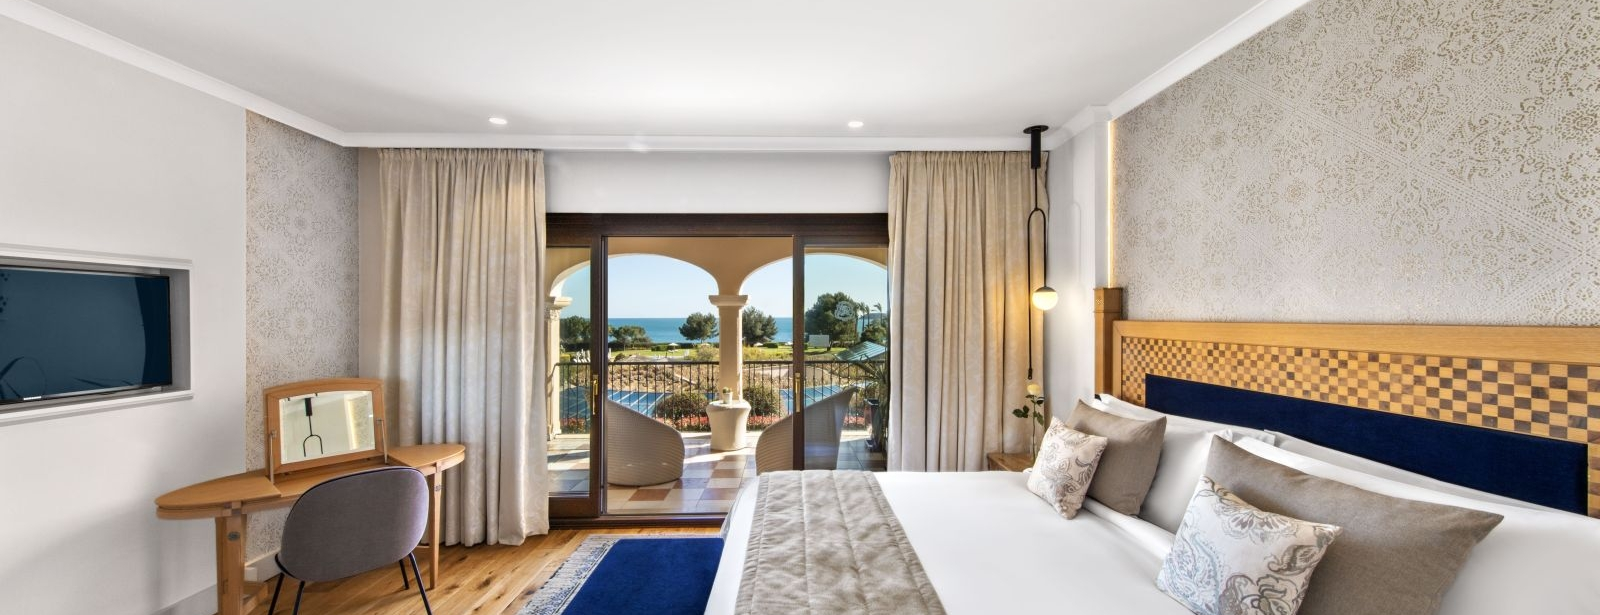 Newly refurbished Ocean Two Suite at the luxus spa resort in Mallorca The St. Regis Mardavall